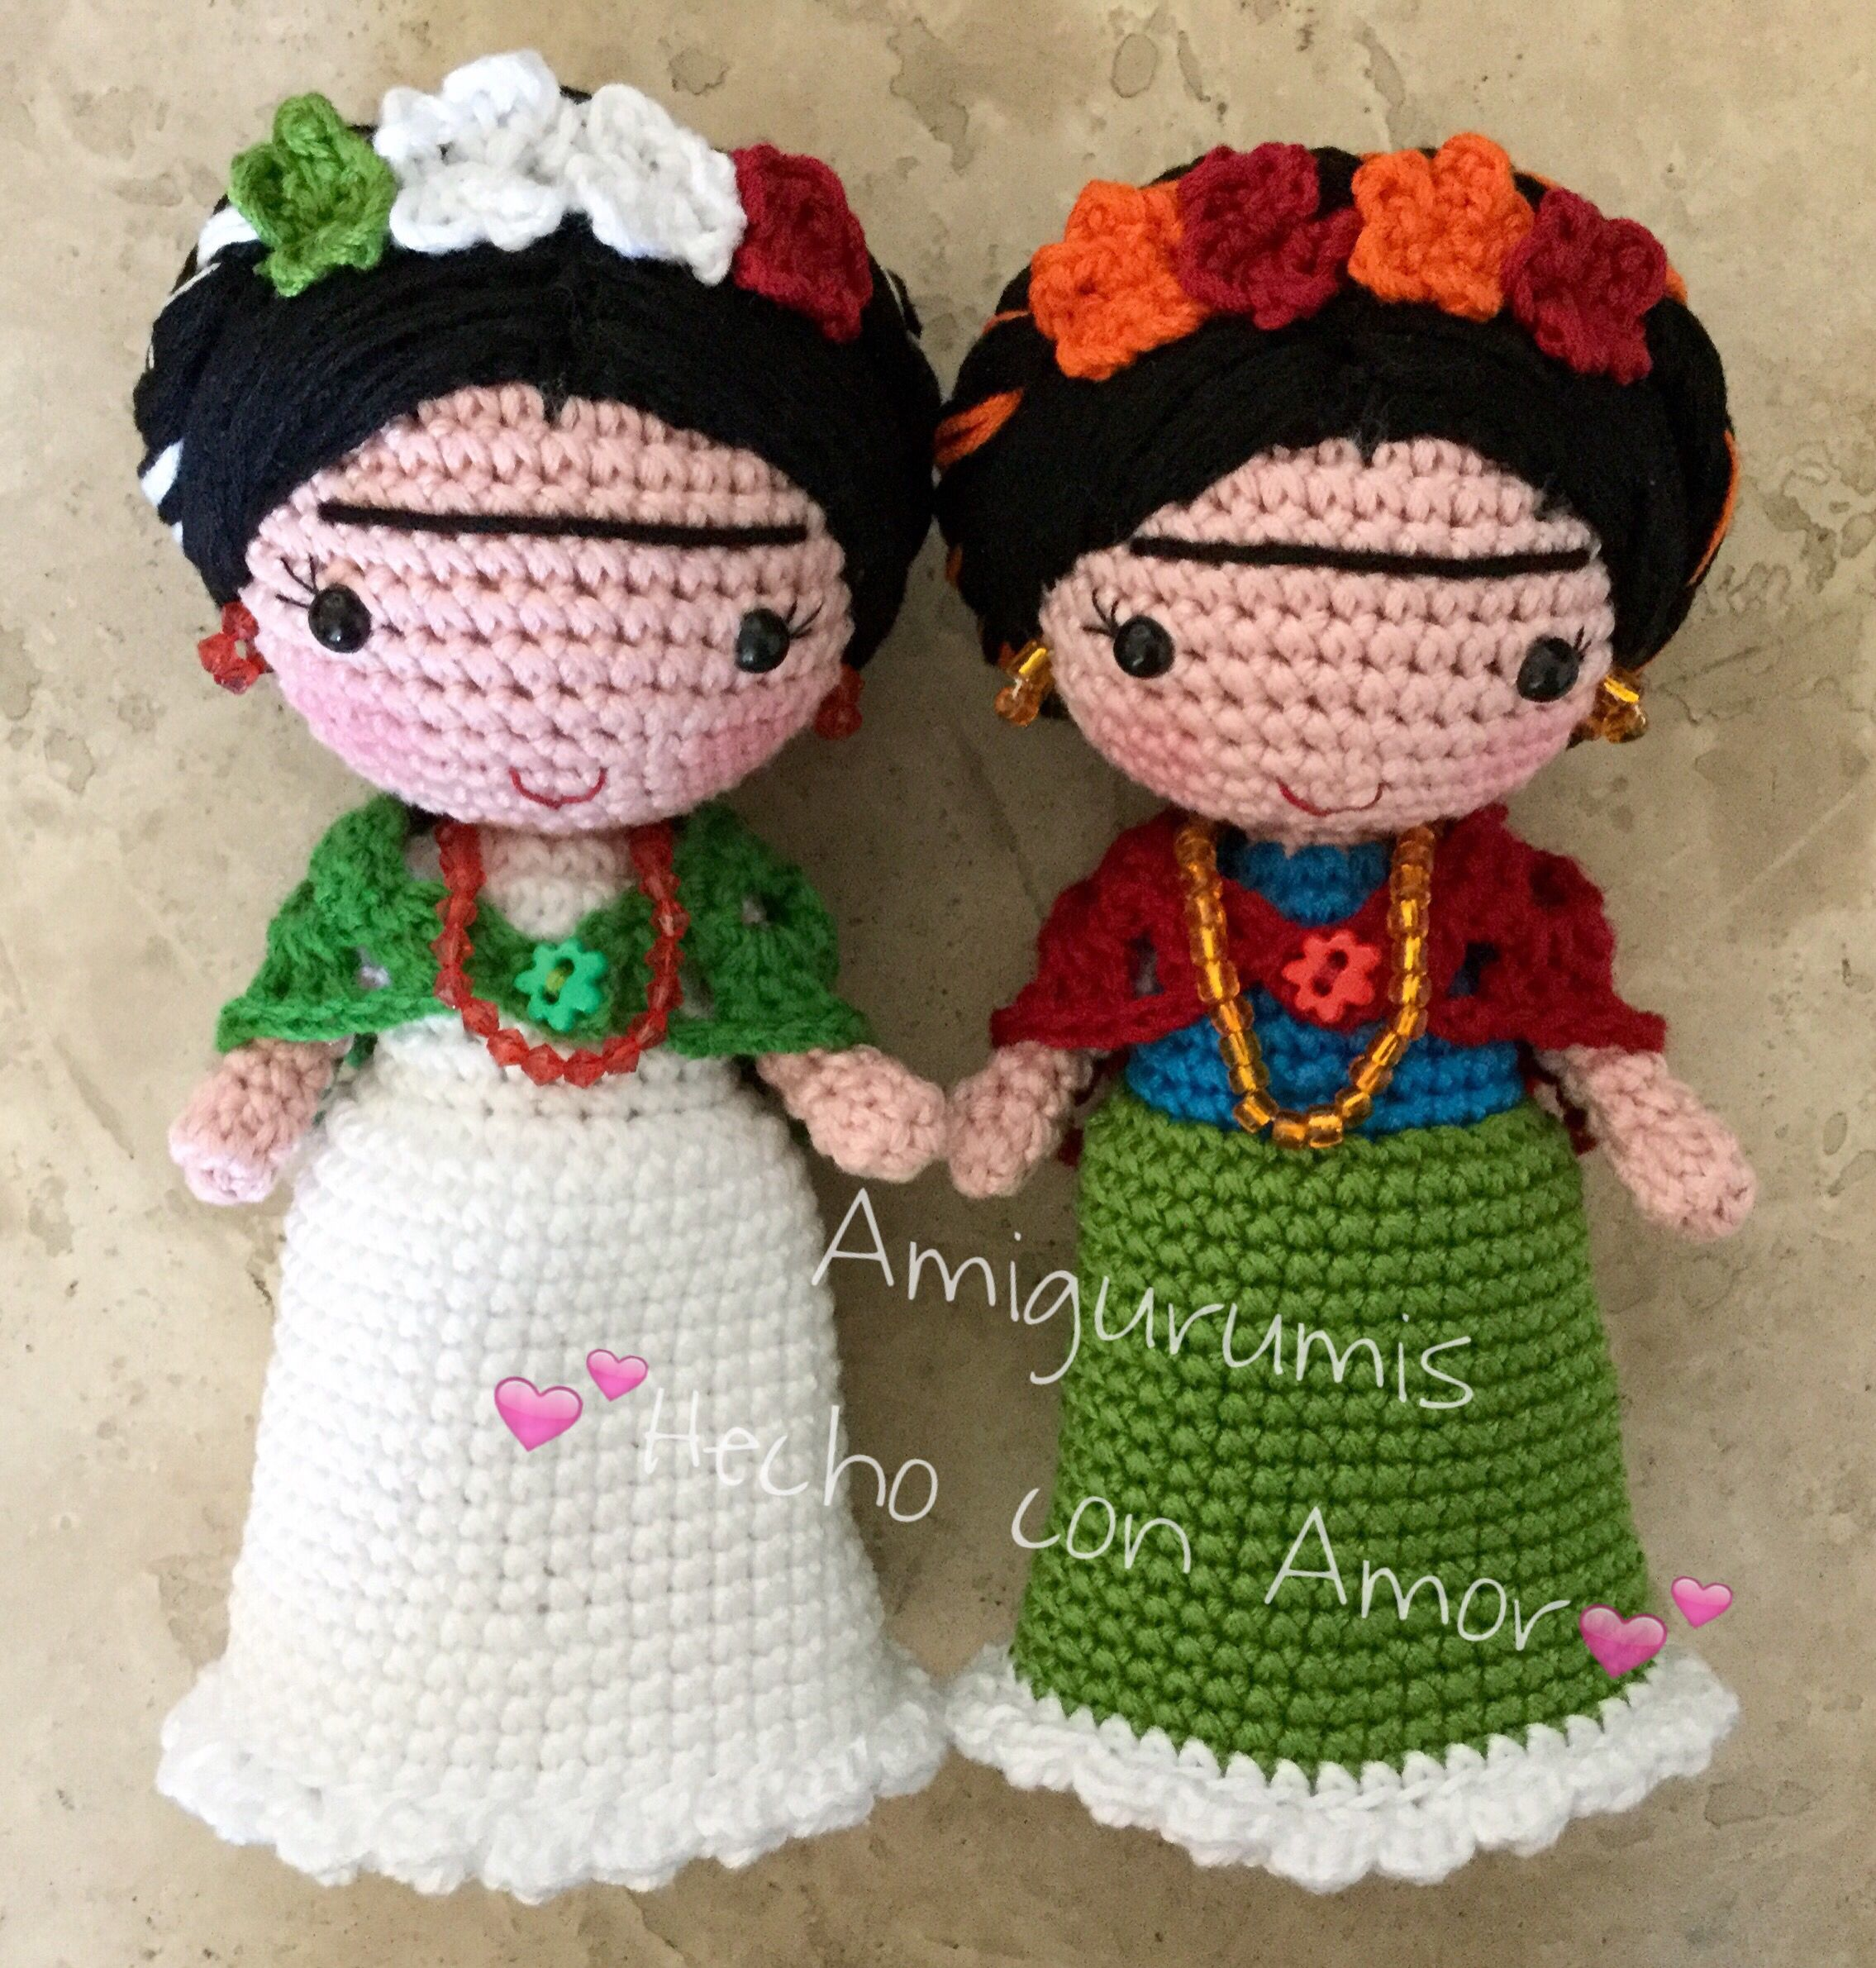 Amigurumi Monster Free Pattern : Frida Kahlo FRIDAS Pinterest Amigurumi and Crochet